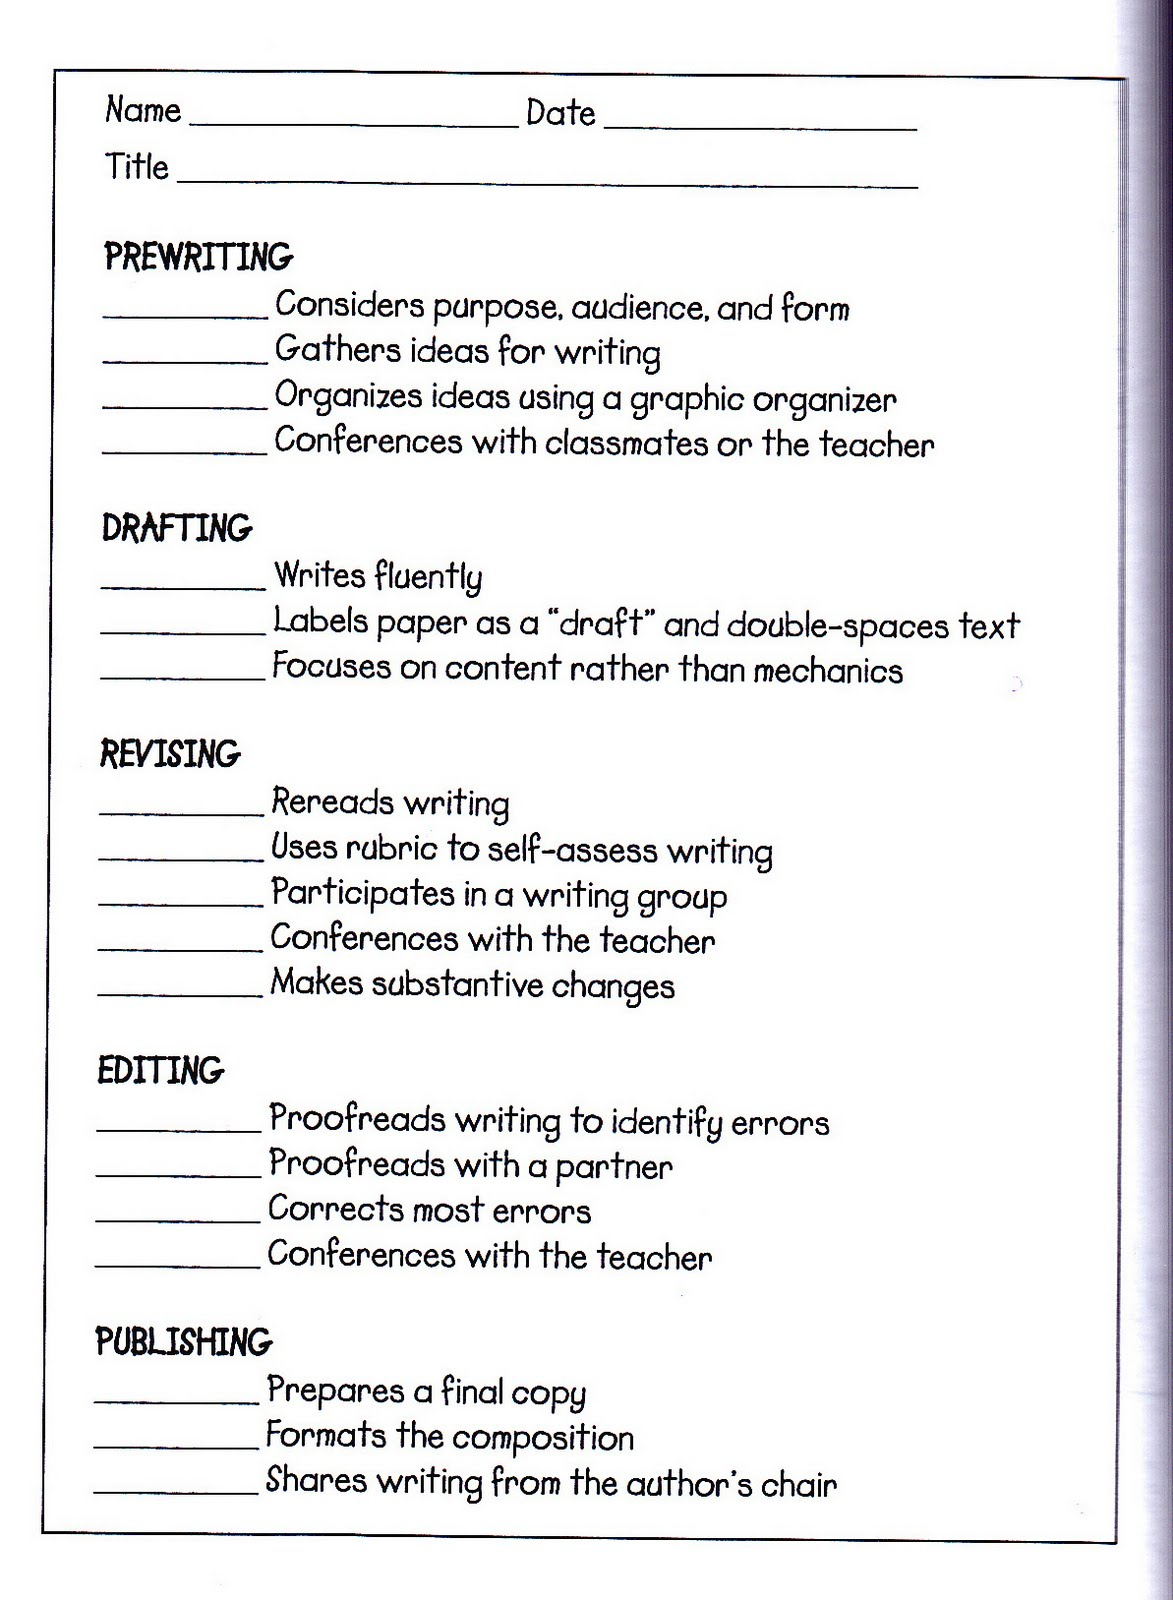 writing process checklist Smiley sentences poster (child self-assessment) great for self checking find this pin and more on writing process by wileyteaching smiley sentence checklist for editing when writing.